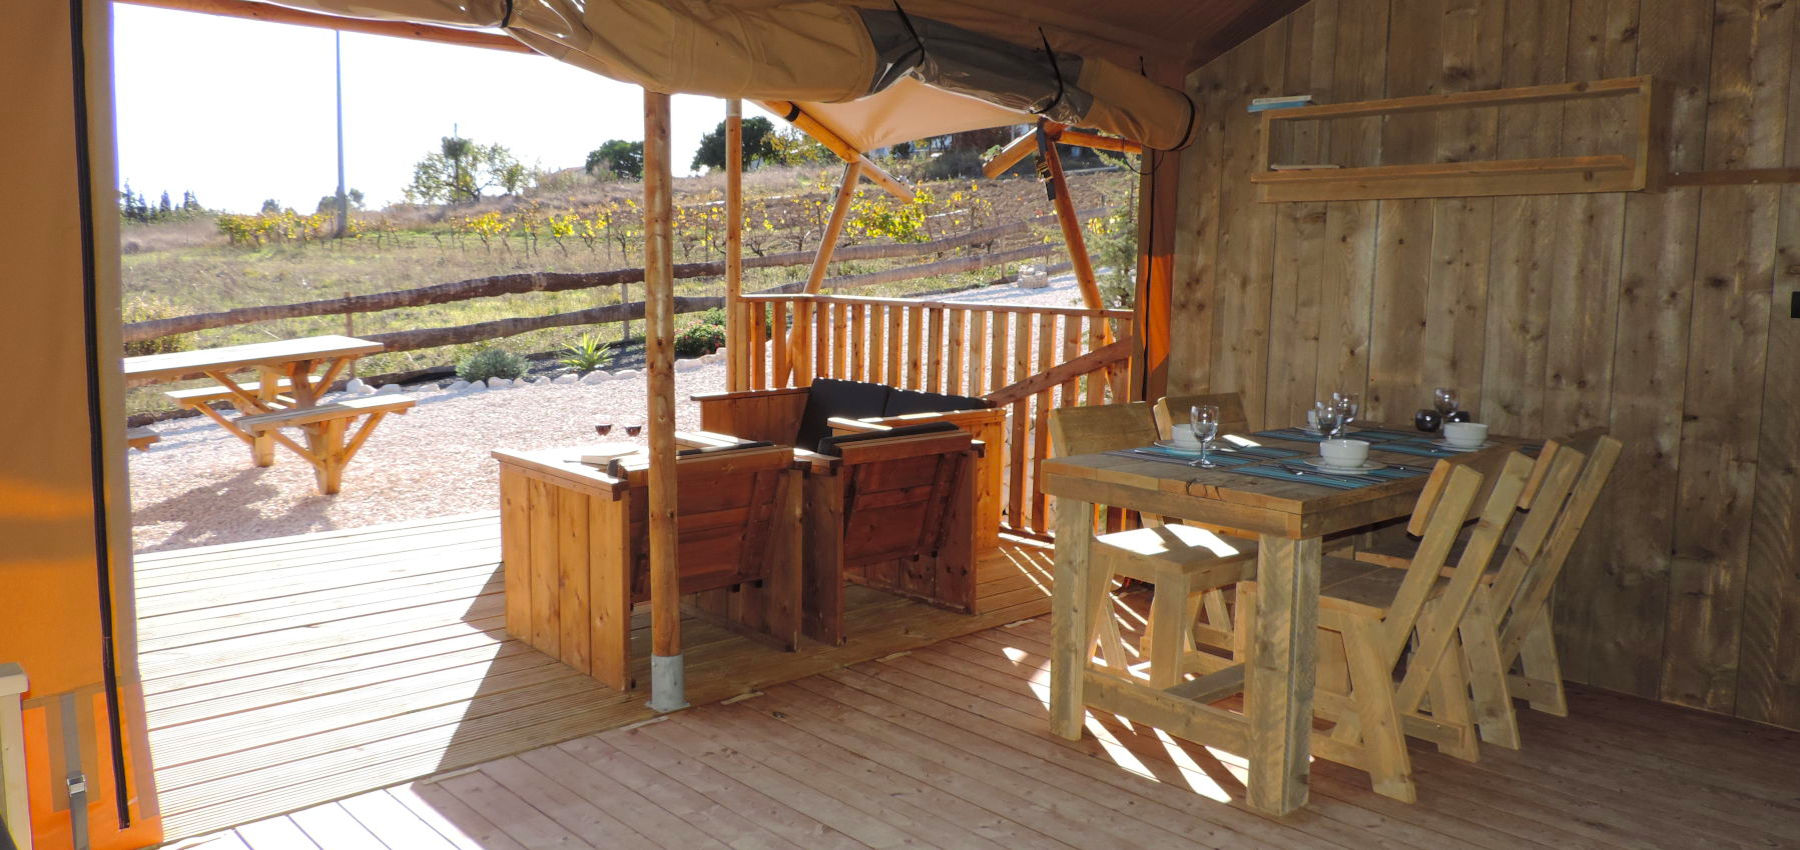 Vacations at Silver Coast Glamping luxury tent lodges   Portugal